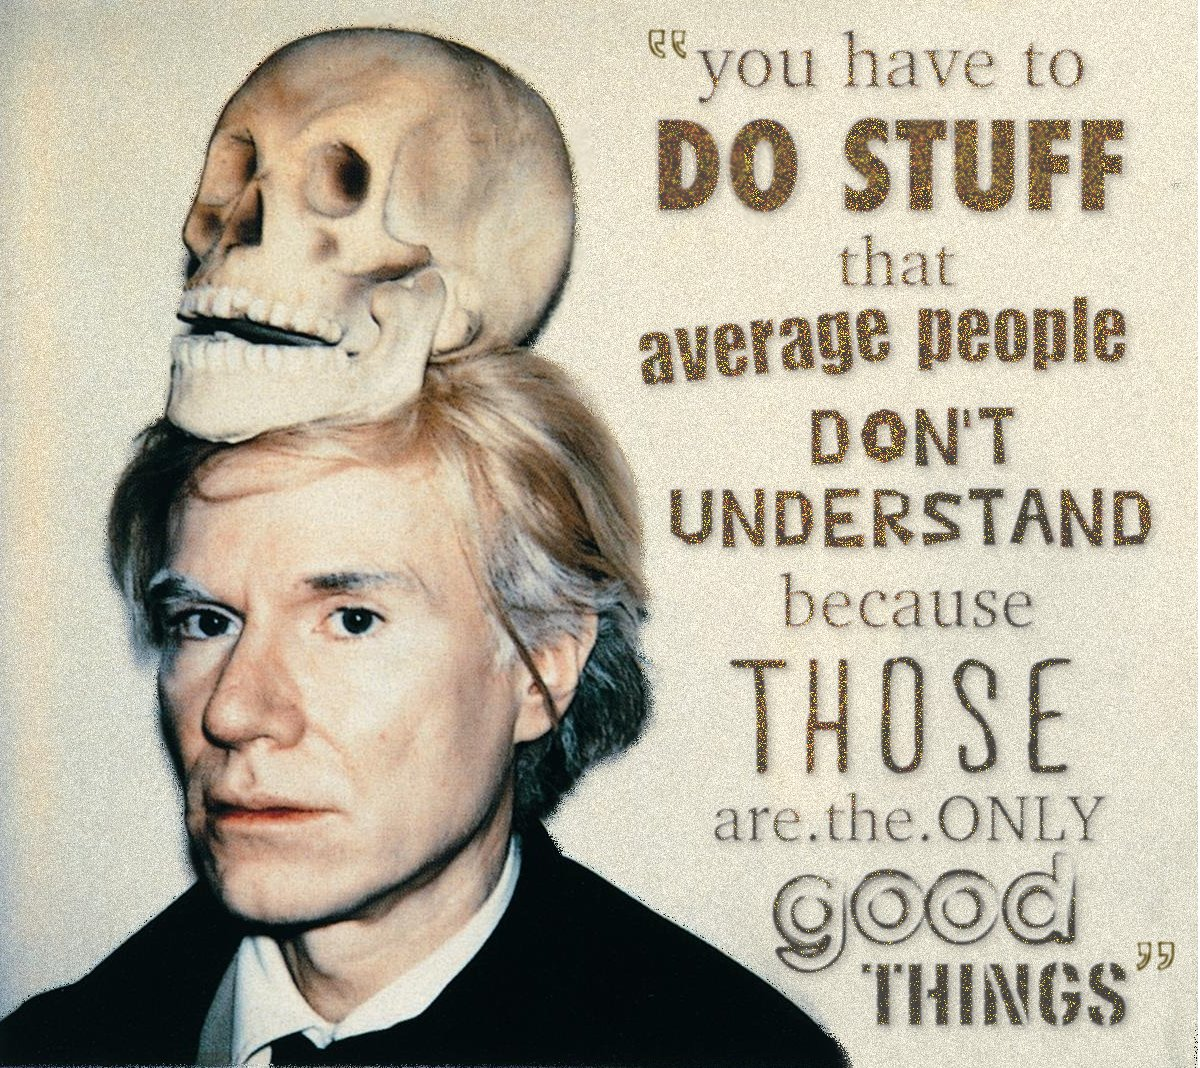 The late, great Andy Warhol